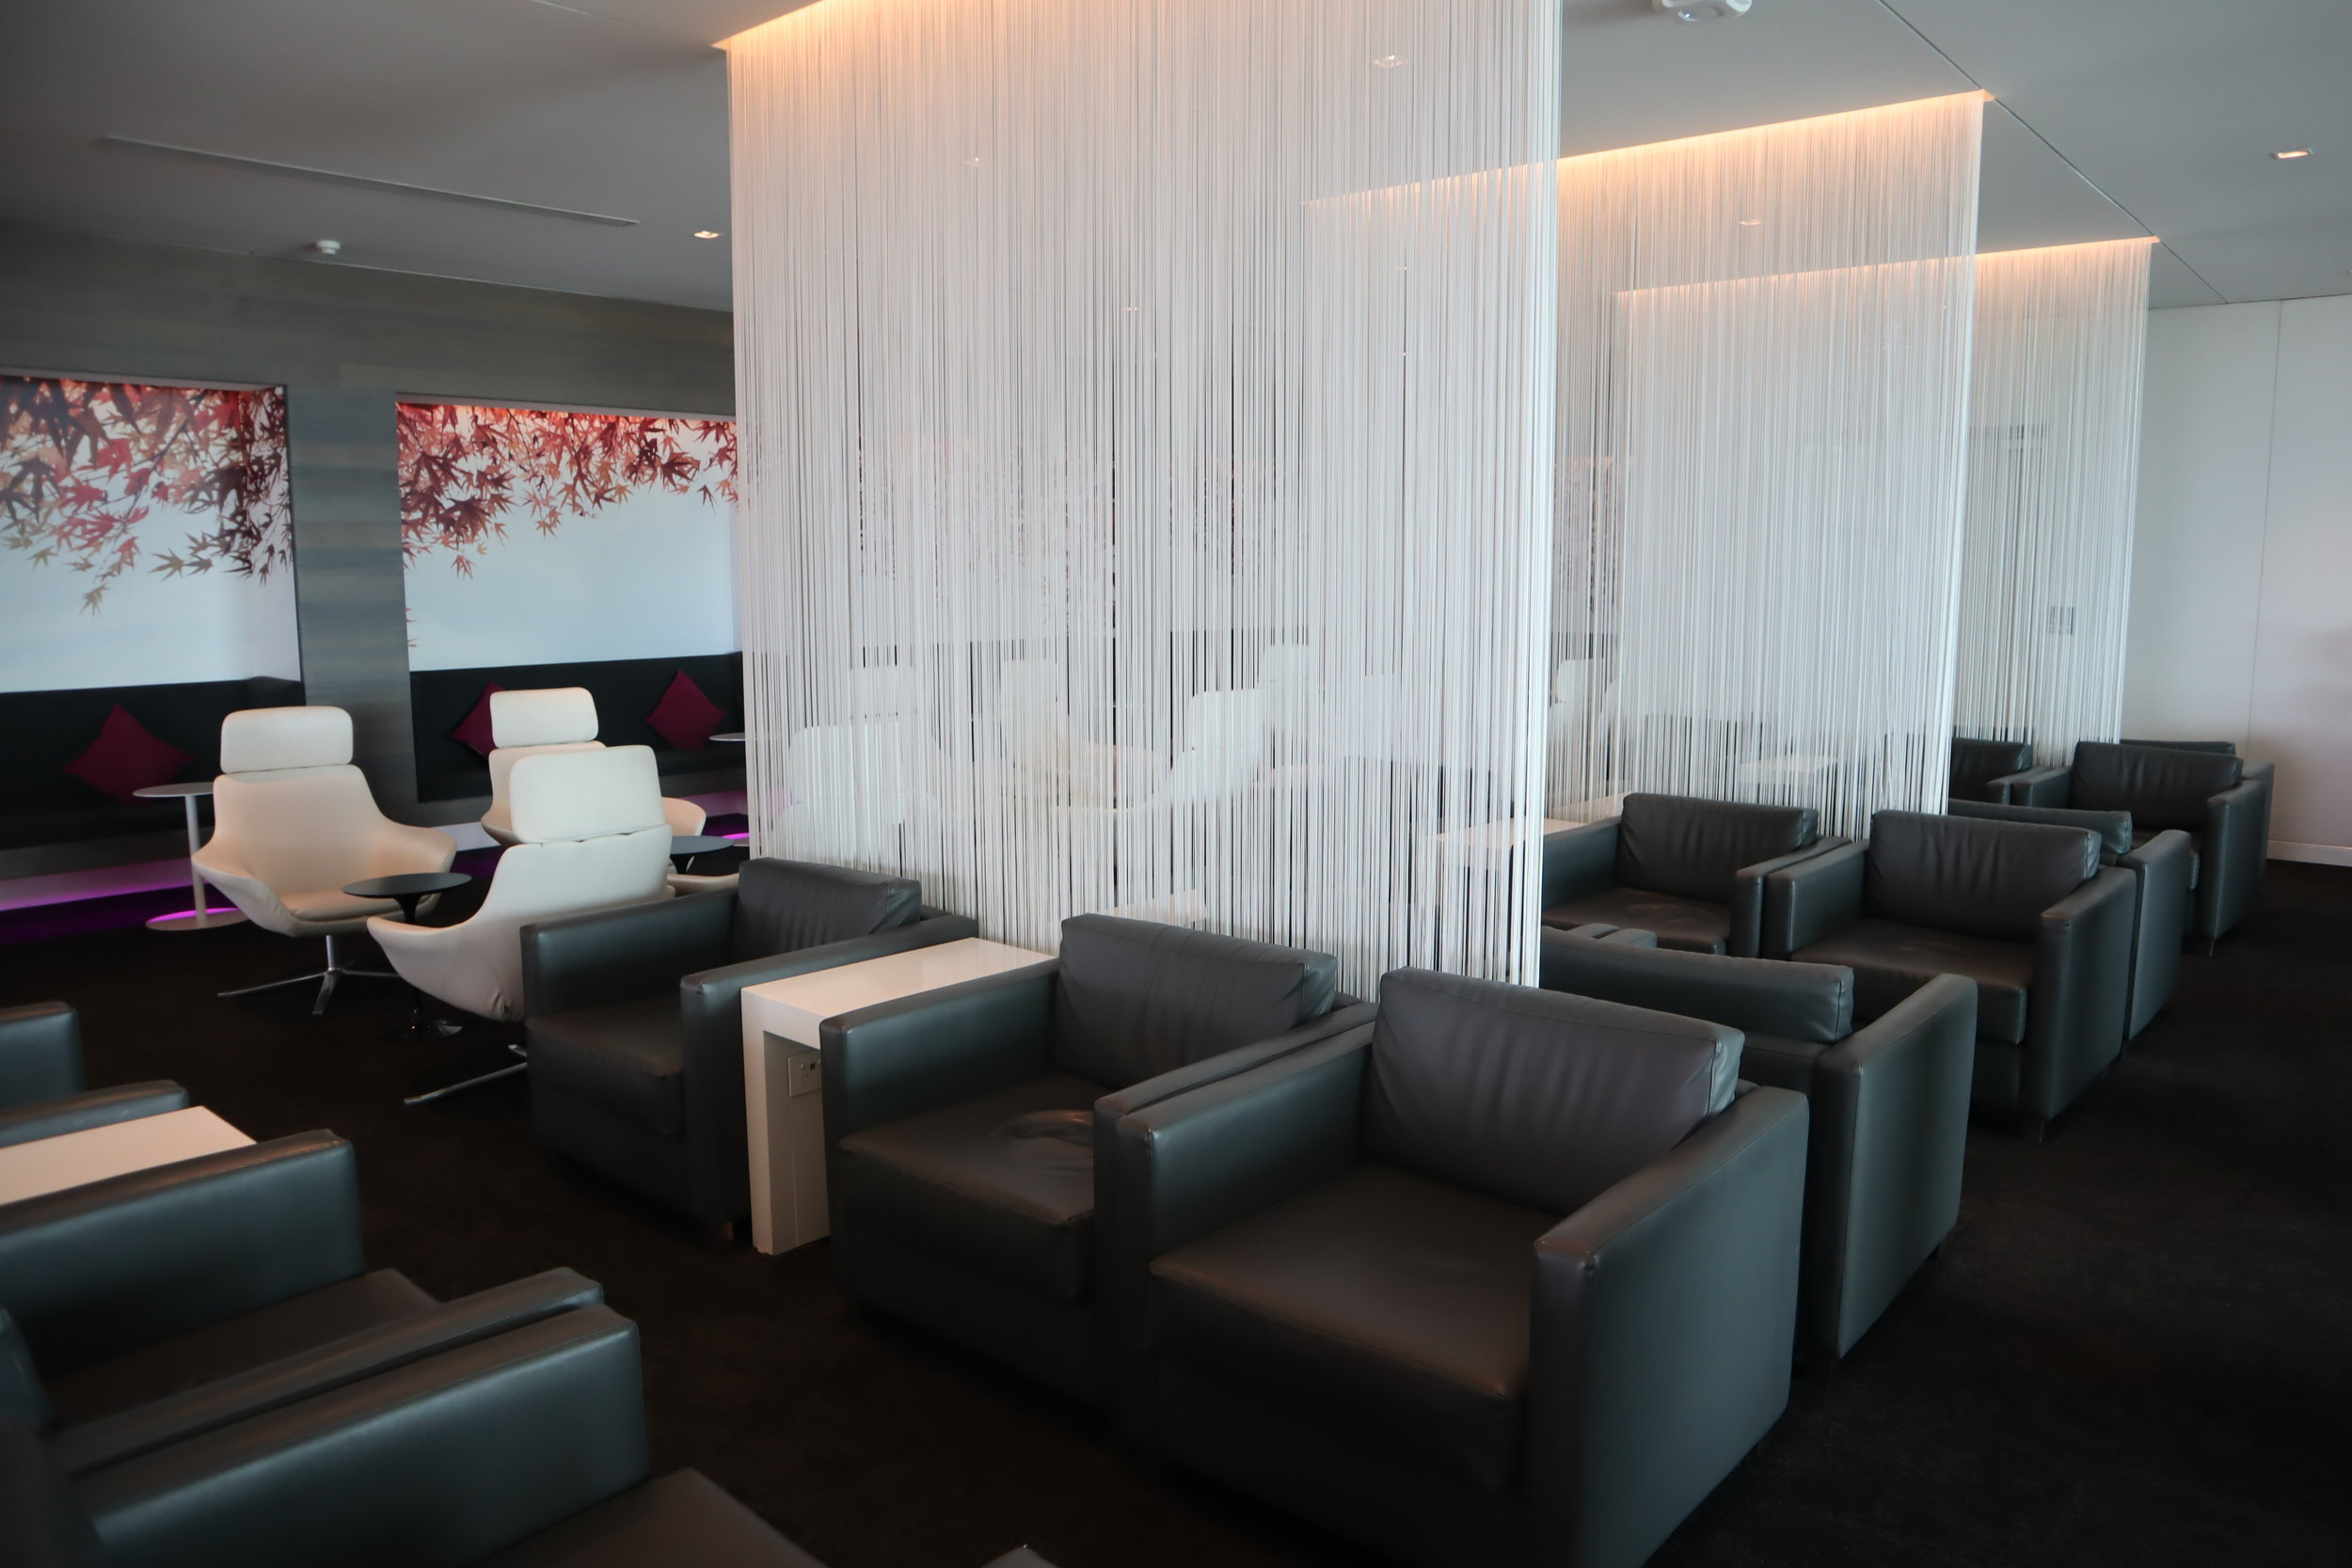 Air New Zealand Lounge Auckland – Seating area